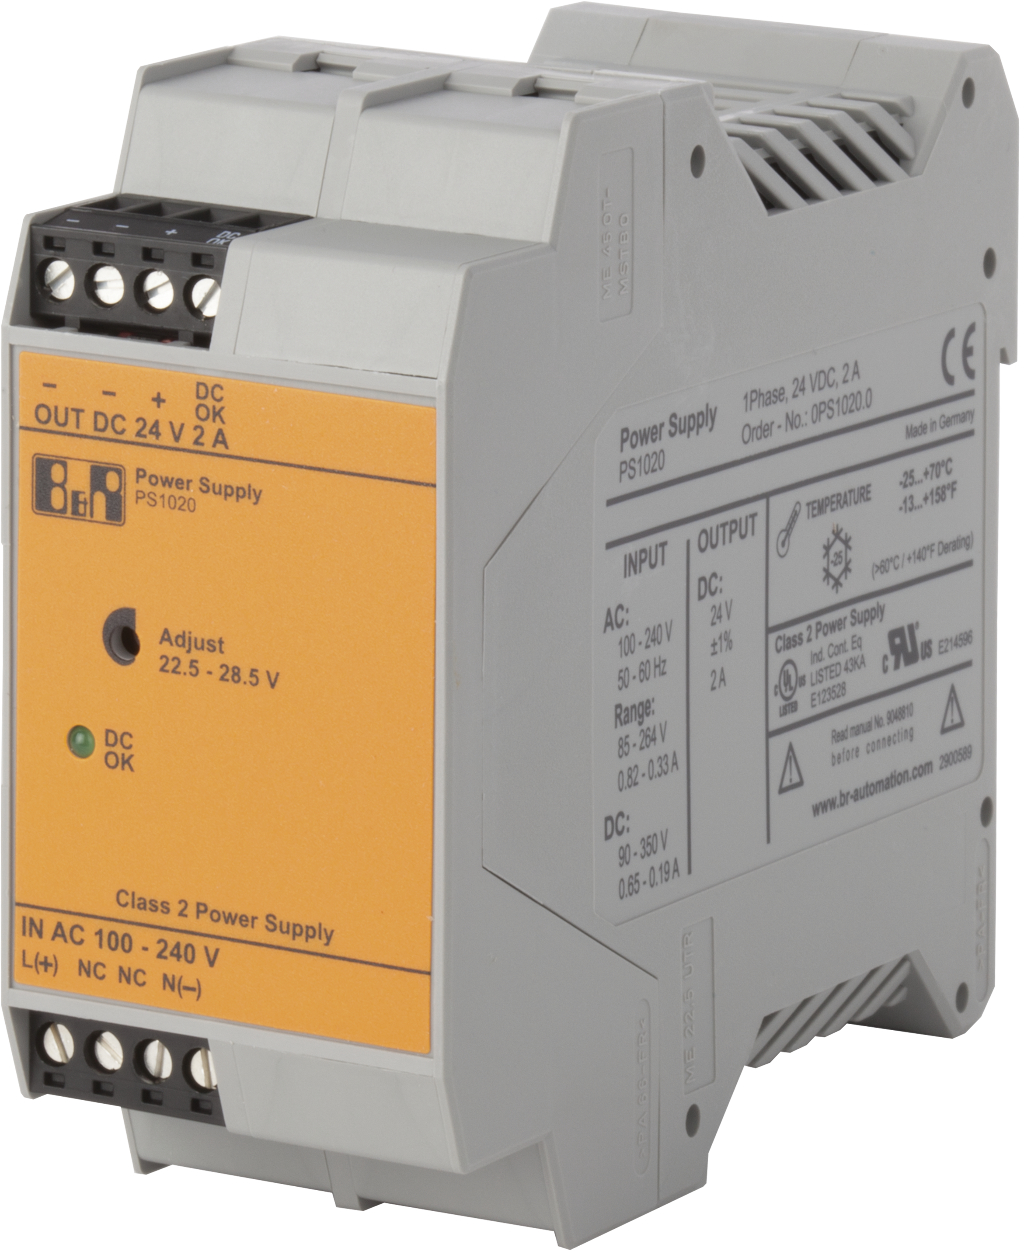 Single-phase power supplies | B&R Industrial Automation